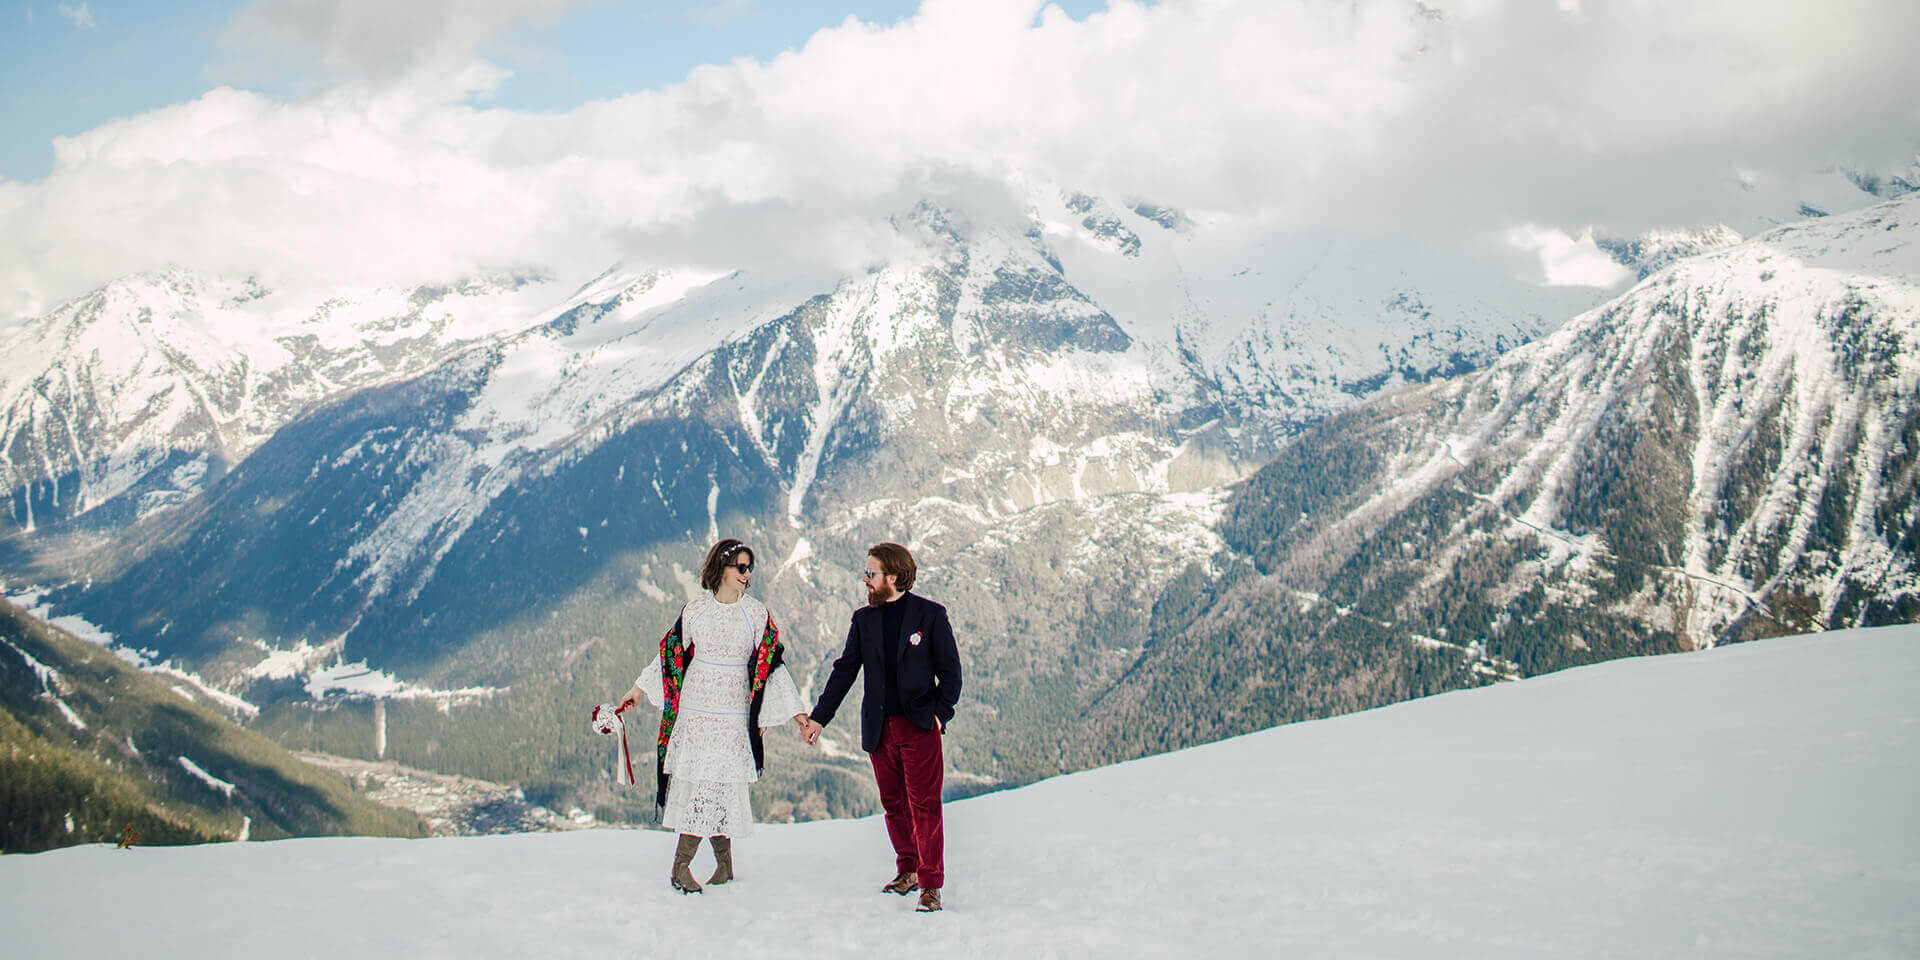 winter wedding in chamonix - granges d'en haut